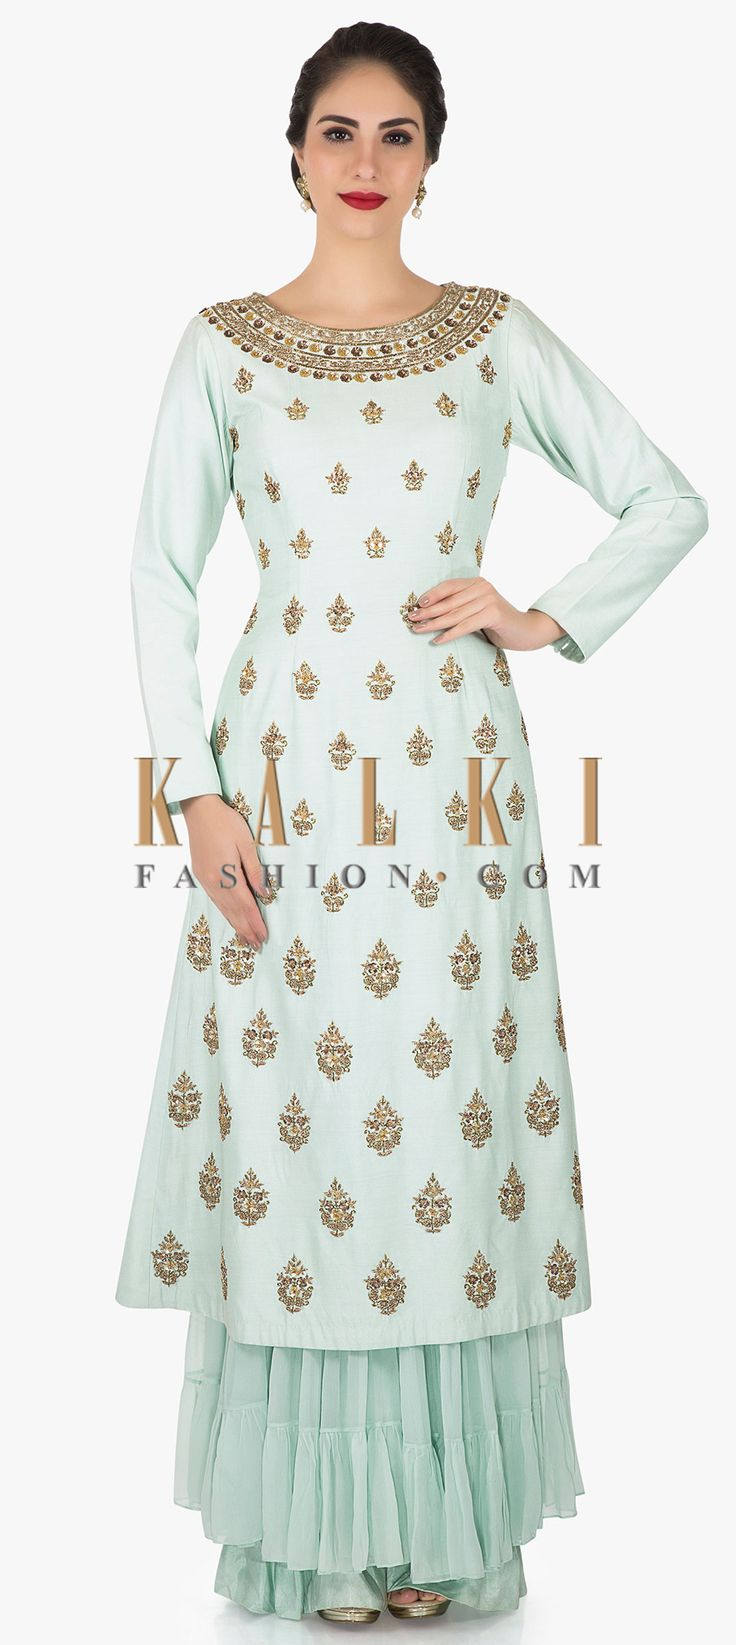 Buy Online from the link below. We ship worldwide (Free Shipping over US$100)  Click Anywhere to Tag Mint Palazzo suit adorn in heavy zardosi and sequin work only on Kalki With the elegance it portrays this mint palazzo suit is perfect for your evening dinner parties. The mint top is featured in santoon fabric whereas the bottom comes in georgette. The suit is embellished in zardosi work and sequin detailing. The palazzo showcases the trendy ruffles at the bottoms.